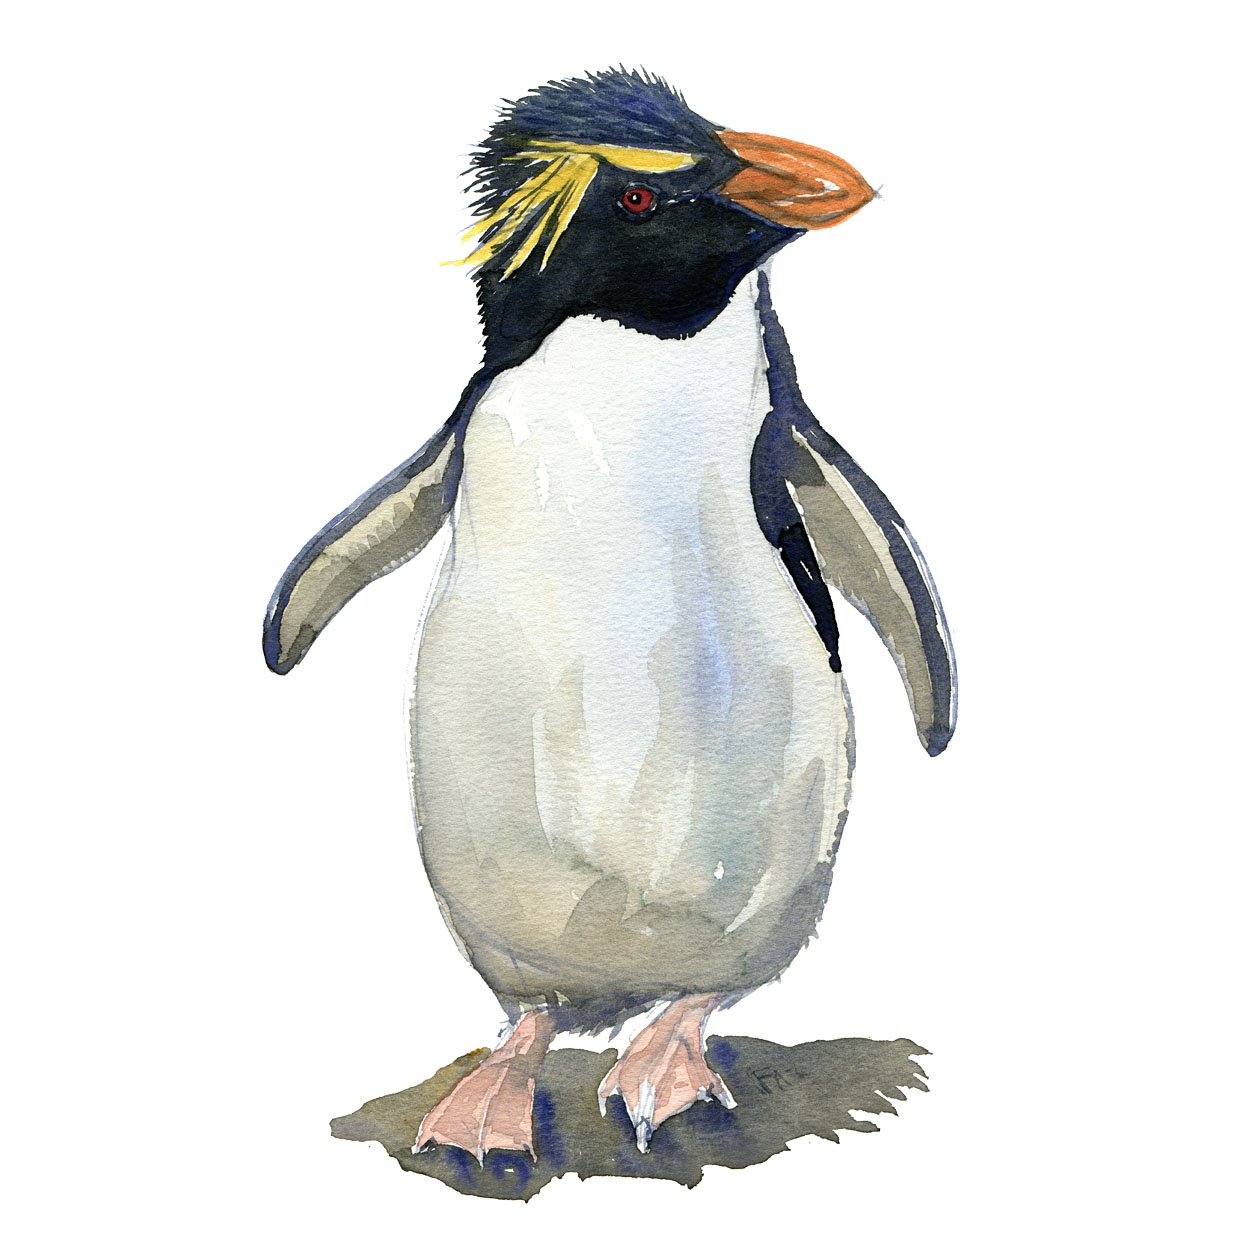 Watercolour sketch of a rockhopper penguin Art by Frits Ahlefeldt